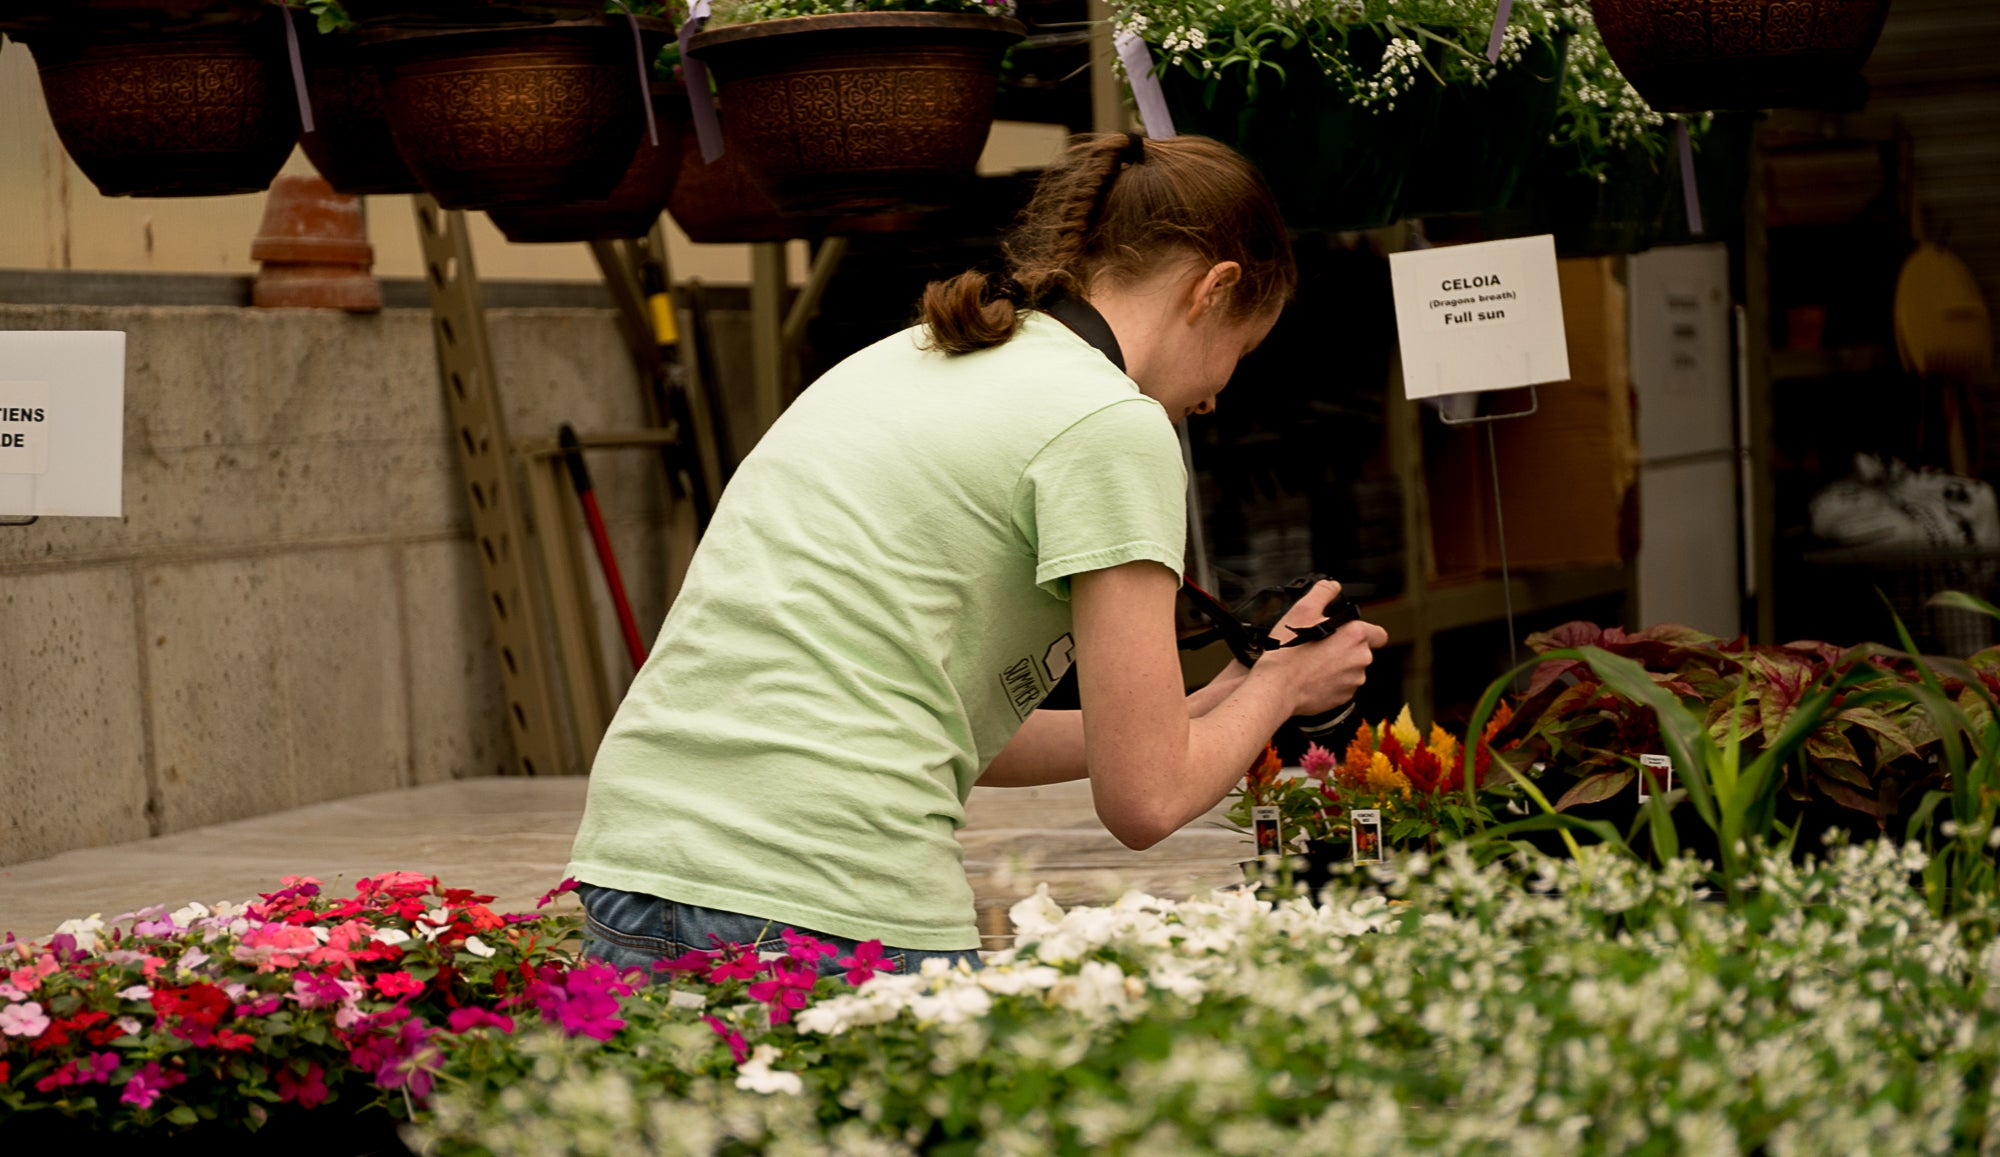 girl in green shirt taking photos of flowers Lensbaby Amy Cyphers Photography Adventures